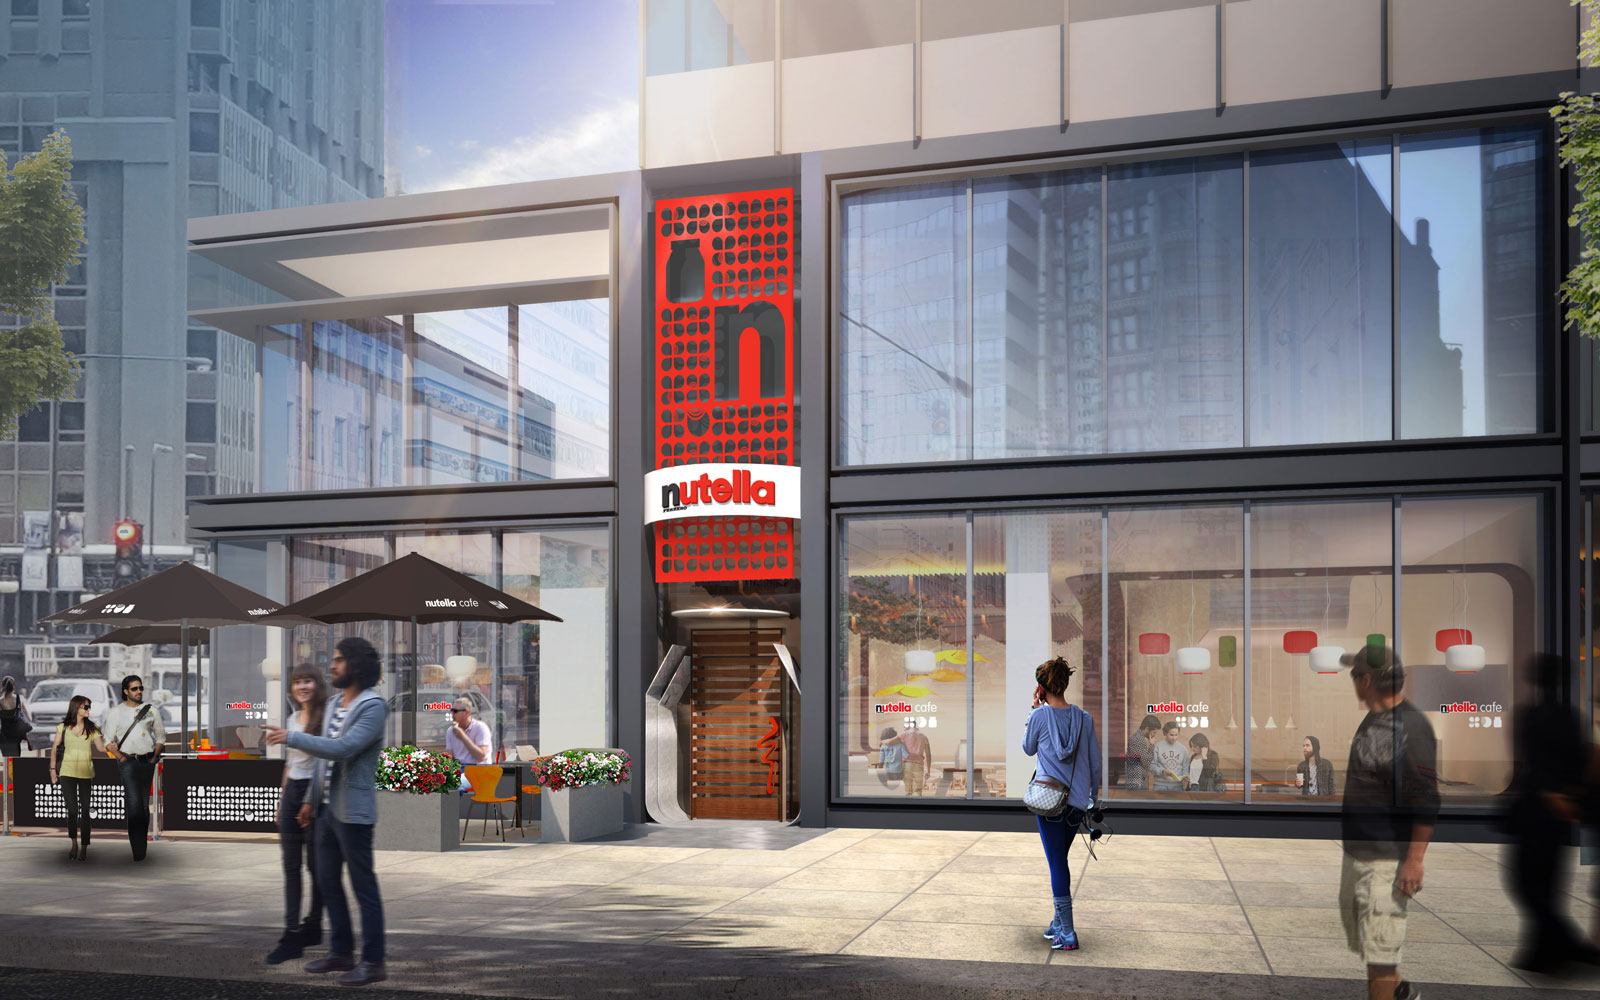 nutella cafe rendering